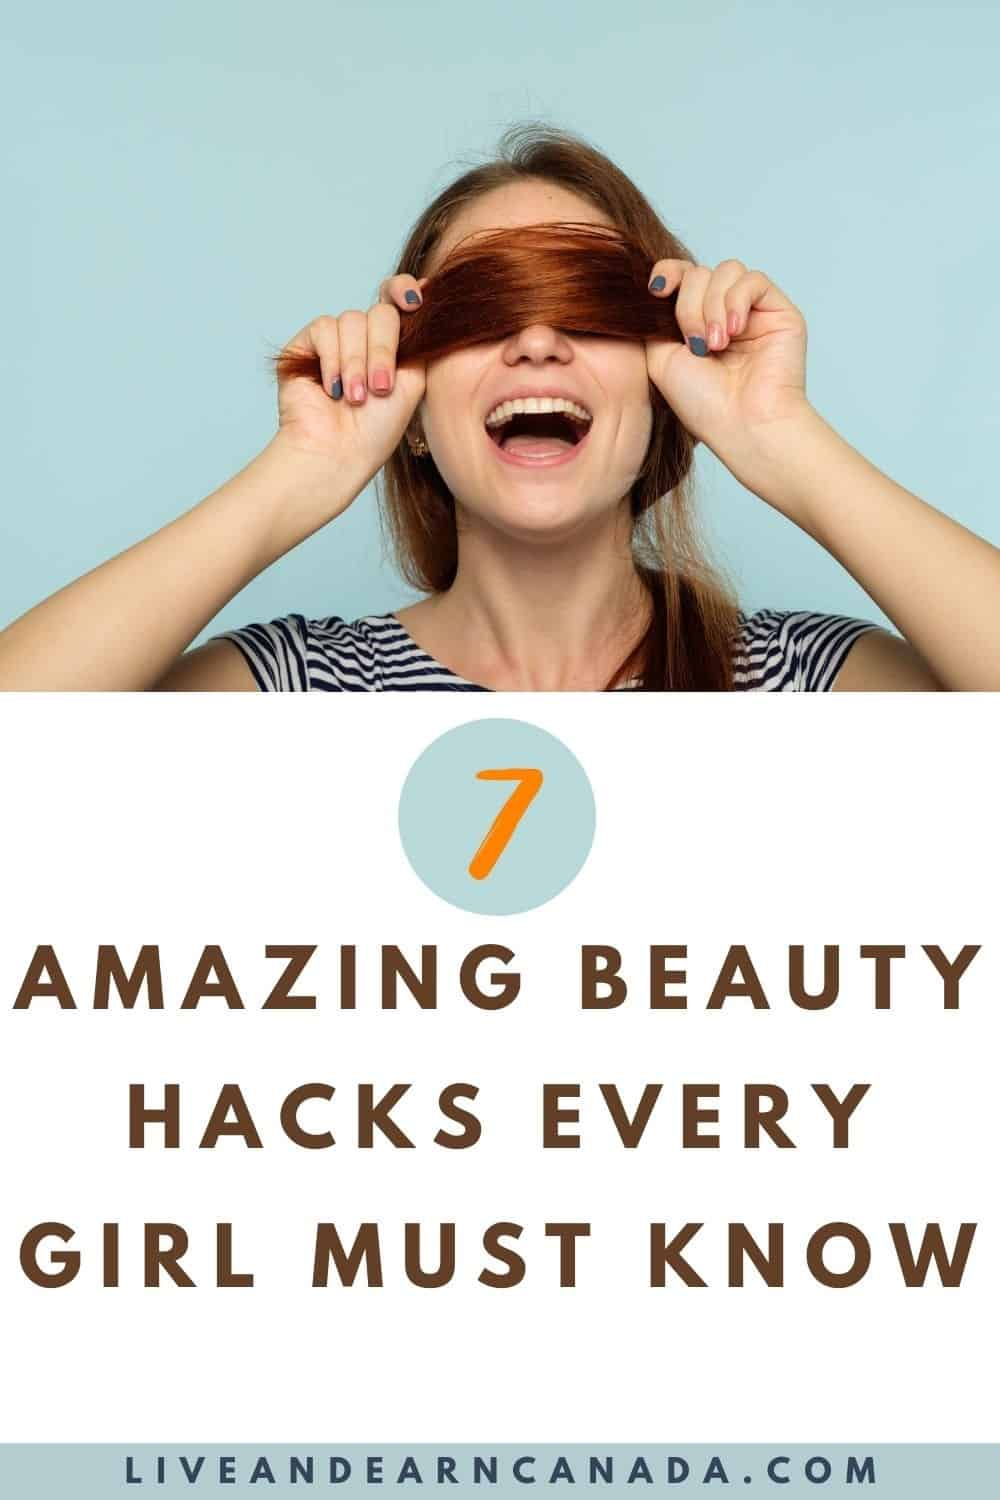 7 LIFE-CHANGING BEAUTY HACKS EVERY GIRL SHOULD KNOW TIPS AND TRICKS | BEAUTY HACKS FOR GIRLS Are you looking for some super easy DIY beauty hacks? Use these amazing beauty tips and tricks to keep your hair, skin, and nails in check. These are some brilliant beauty hacks every girl should know! #beautytricks #beautytips #beautyhacks #beauty